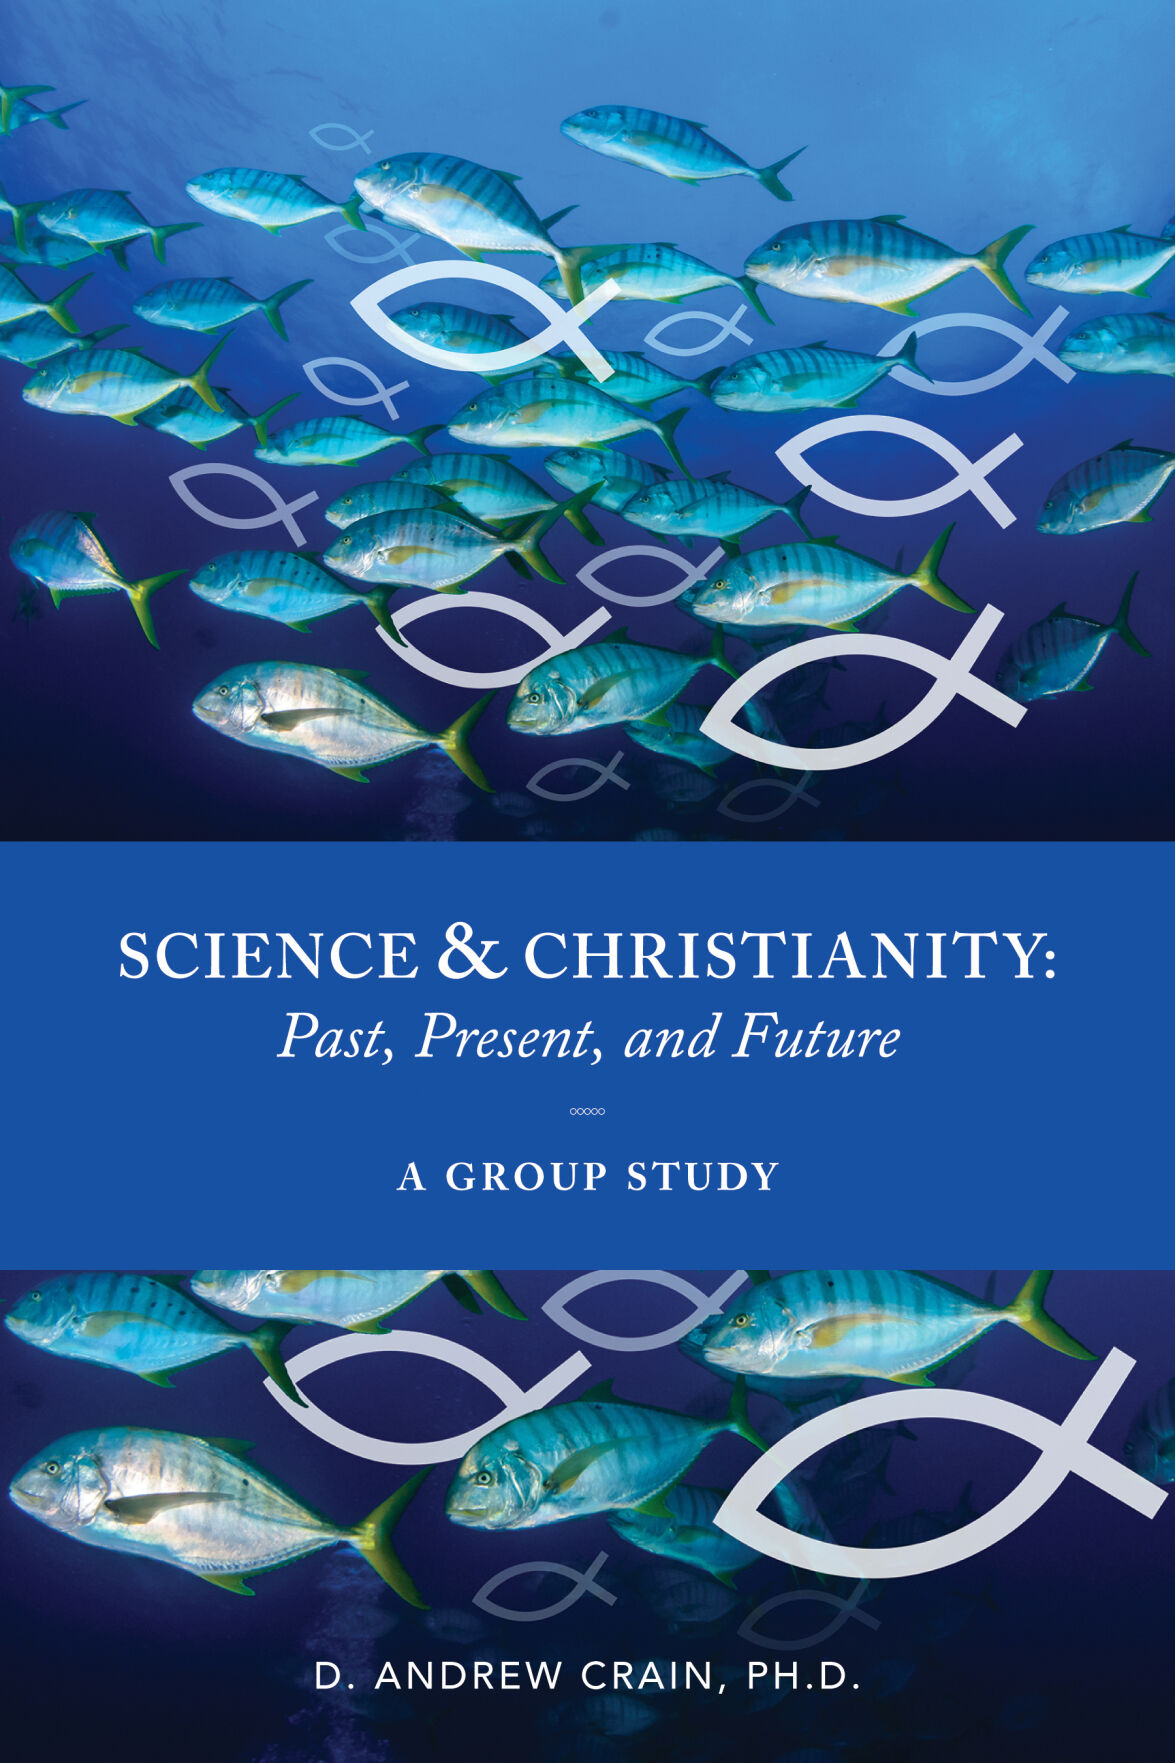 Science & Christianity cover.jpg